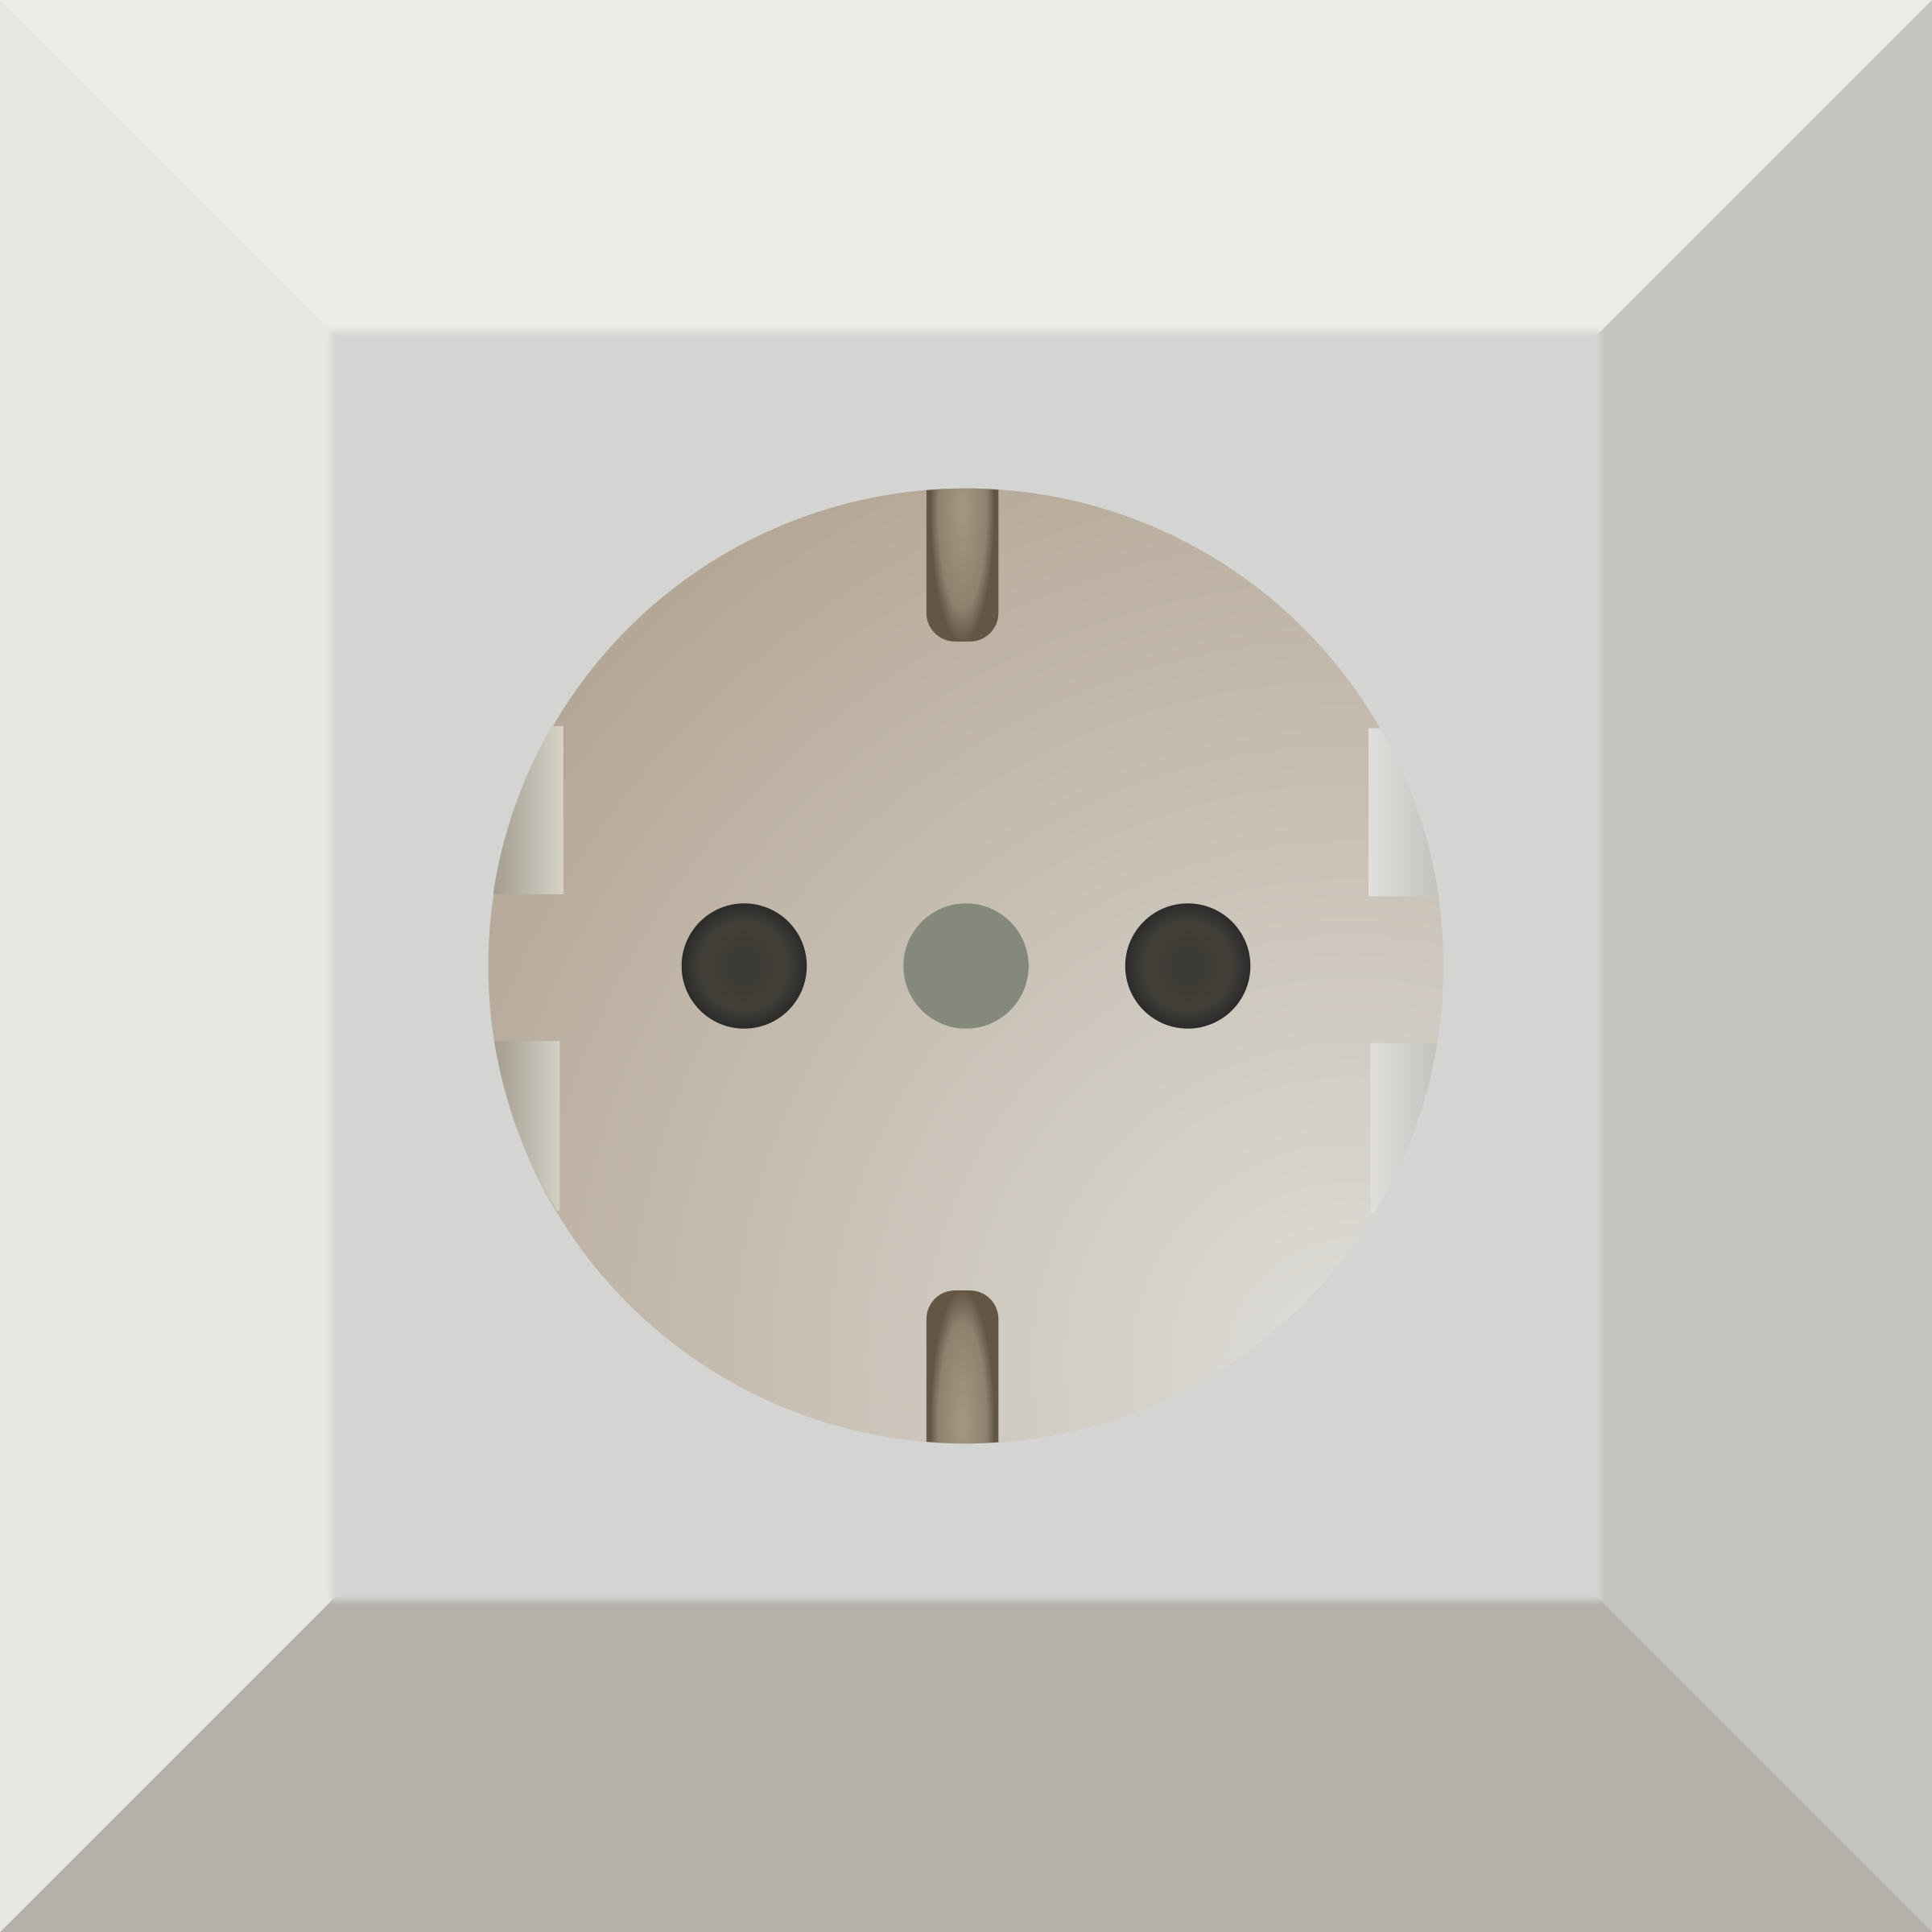 German Power Outlet by qubodup